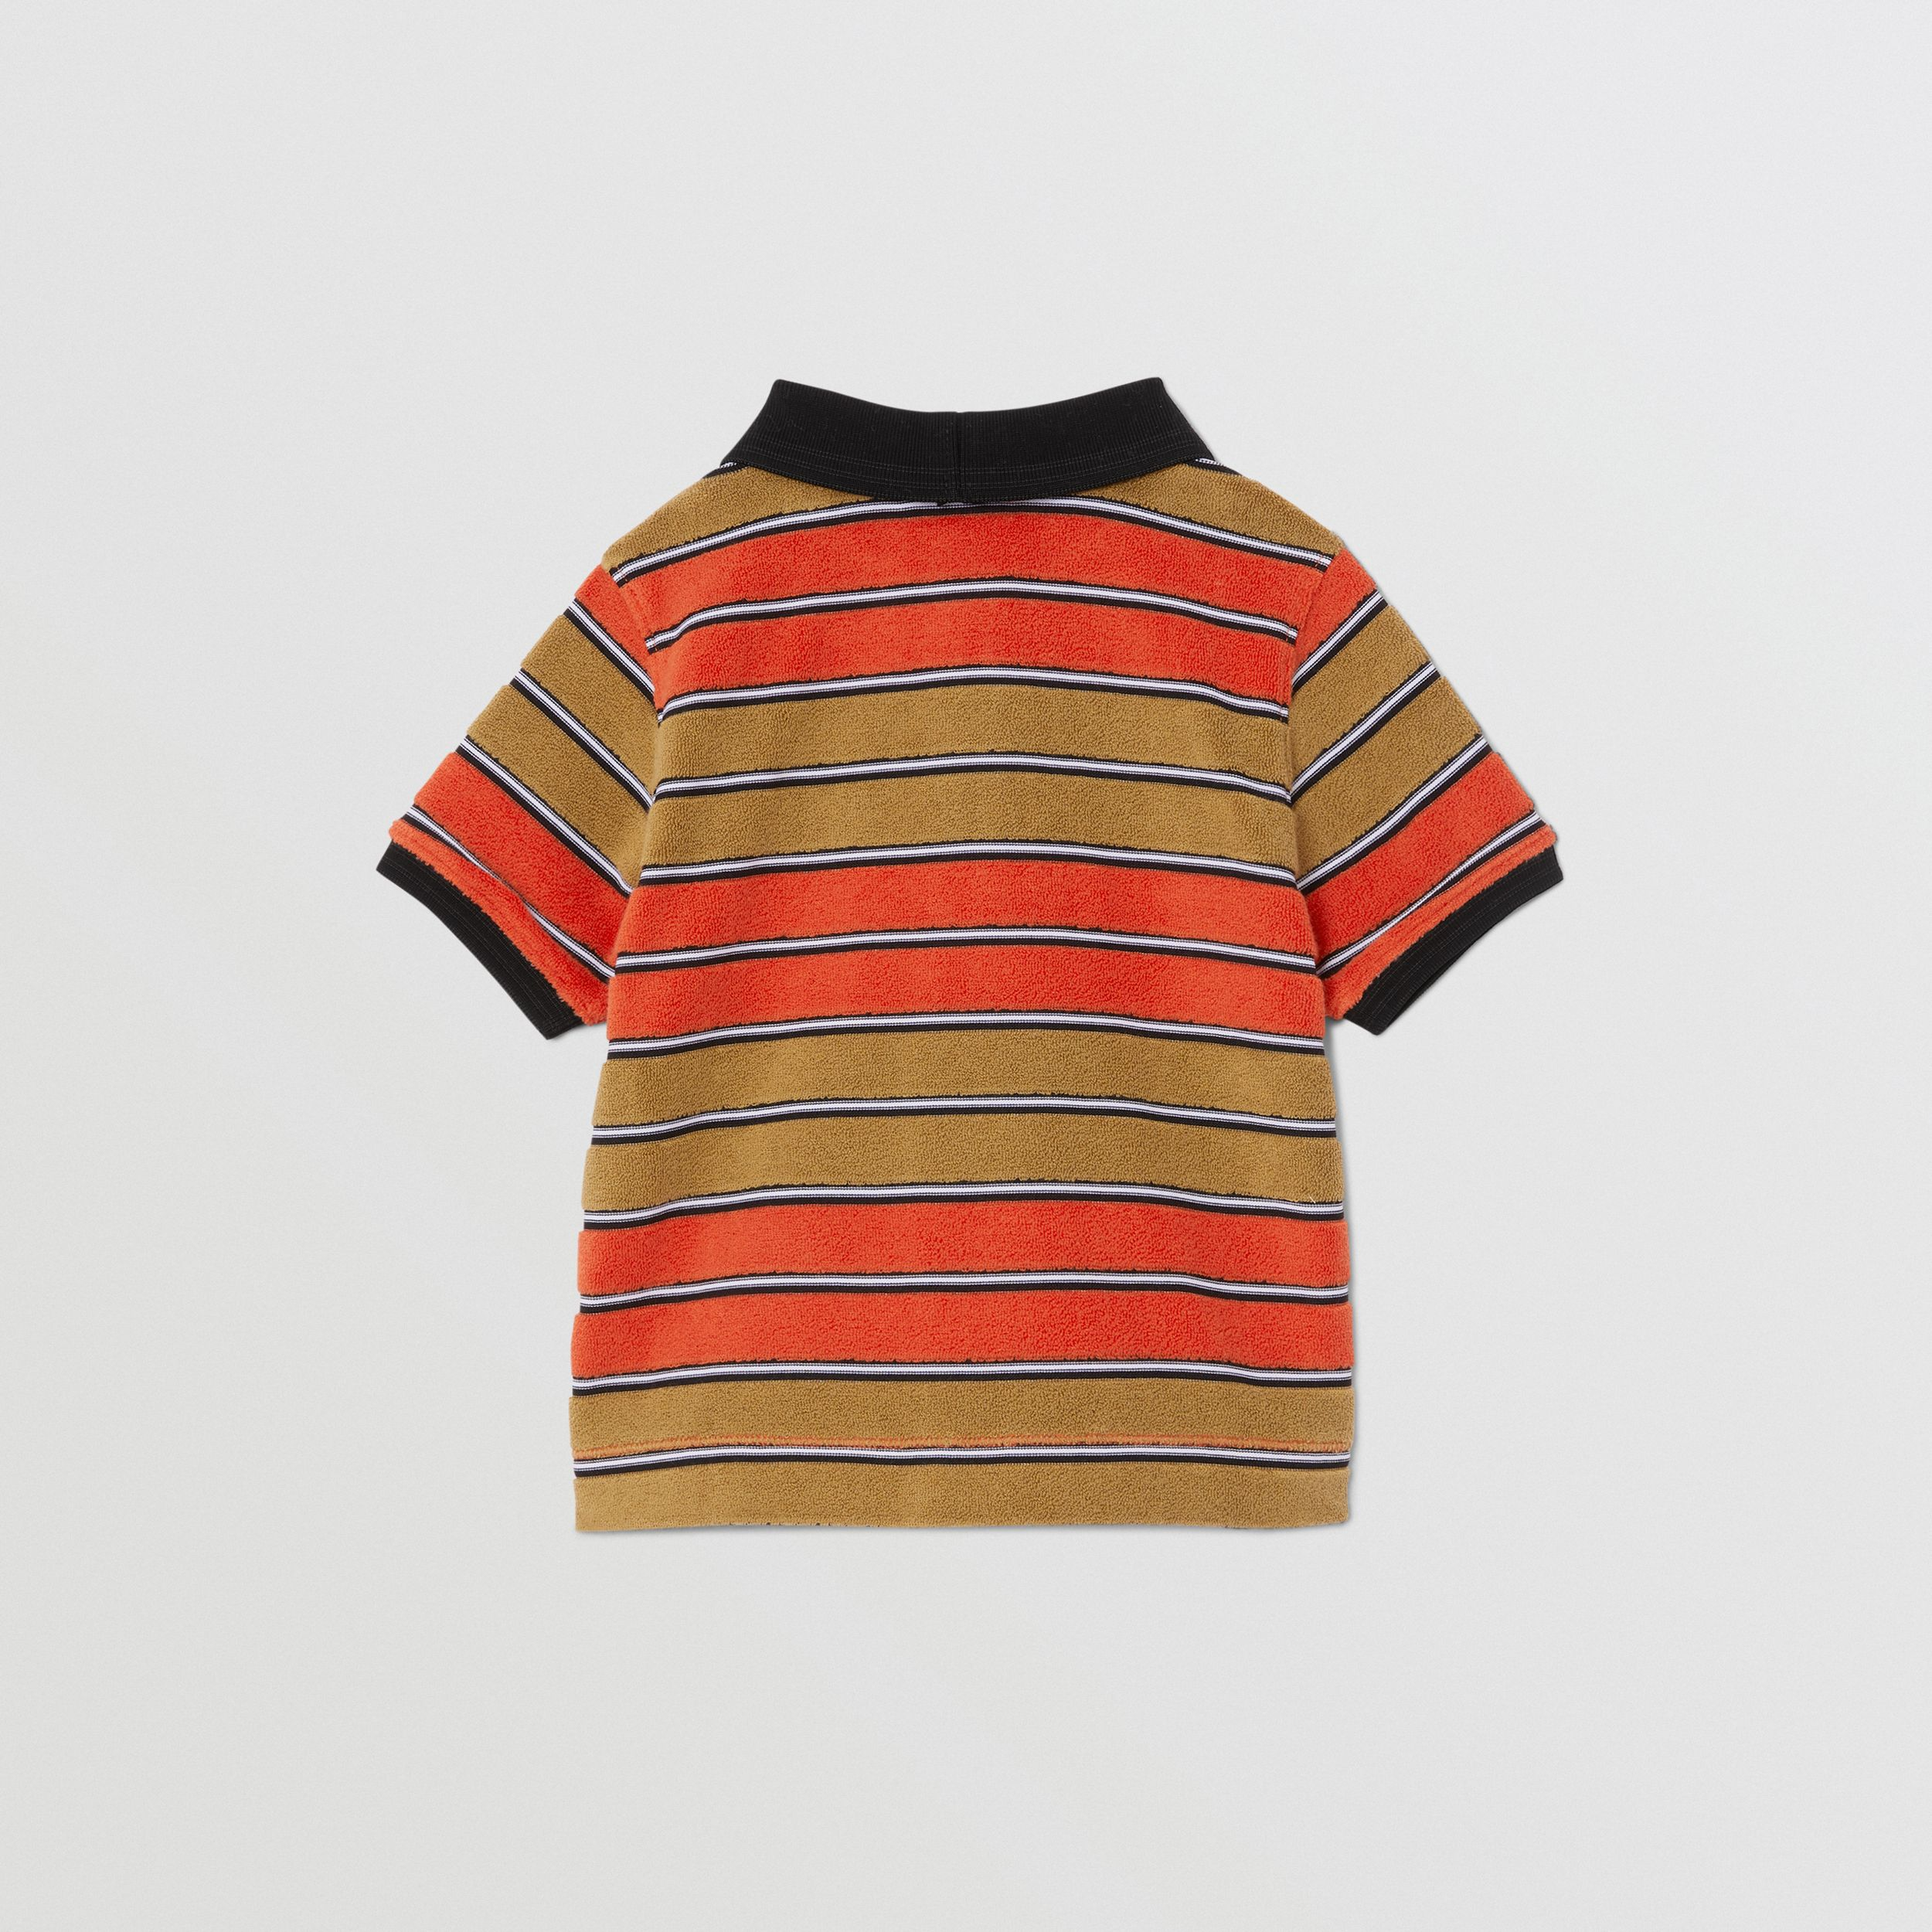 Logo Appliqué Striped Towelling Polo Shirt in Vermilion Red - Children | Burberry - 4